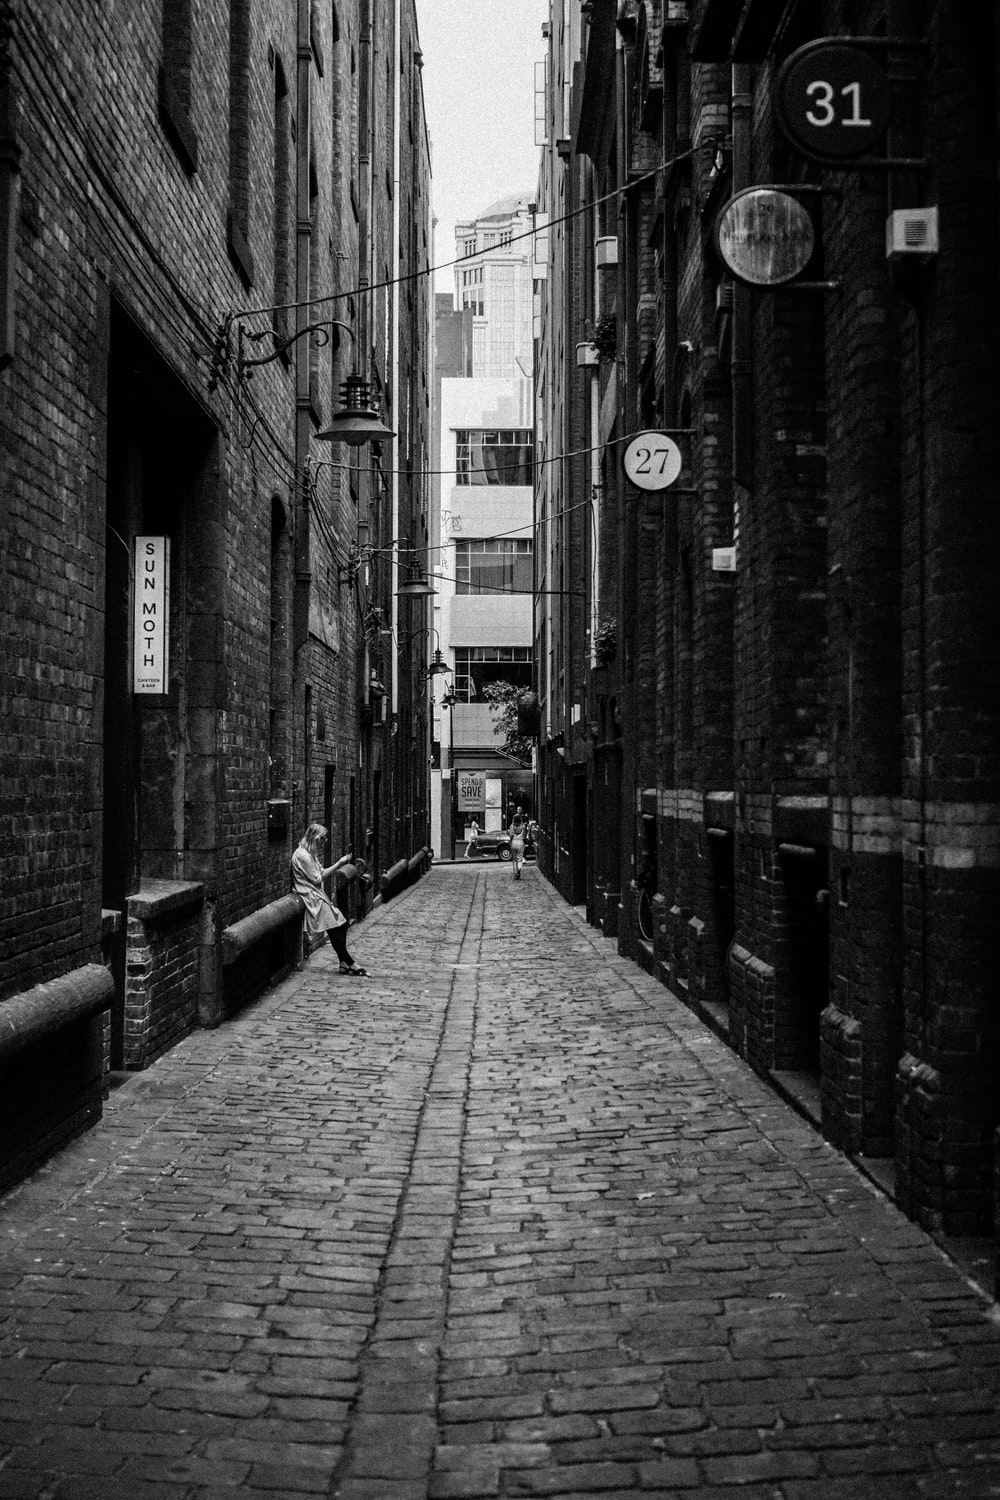 person leaning back on brick building in the alley